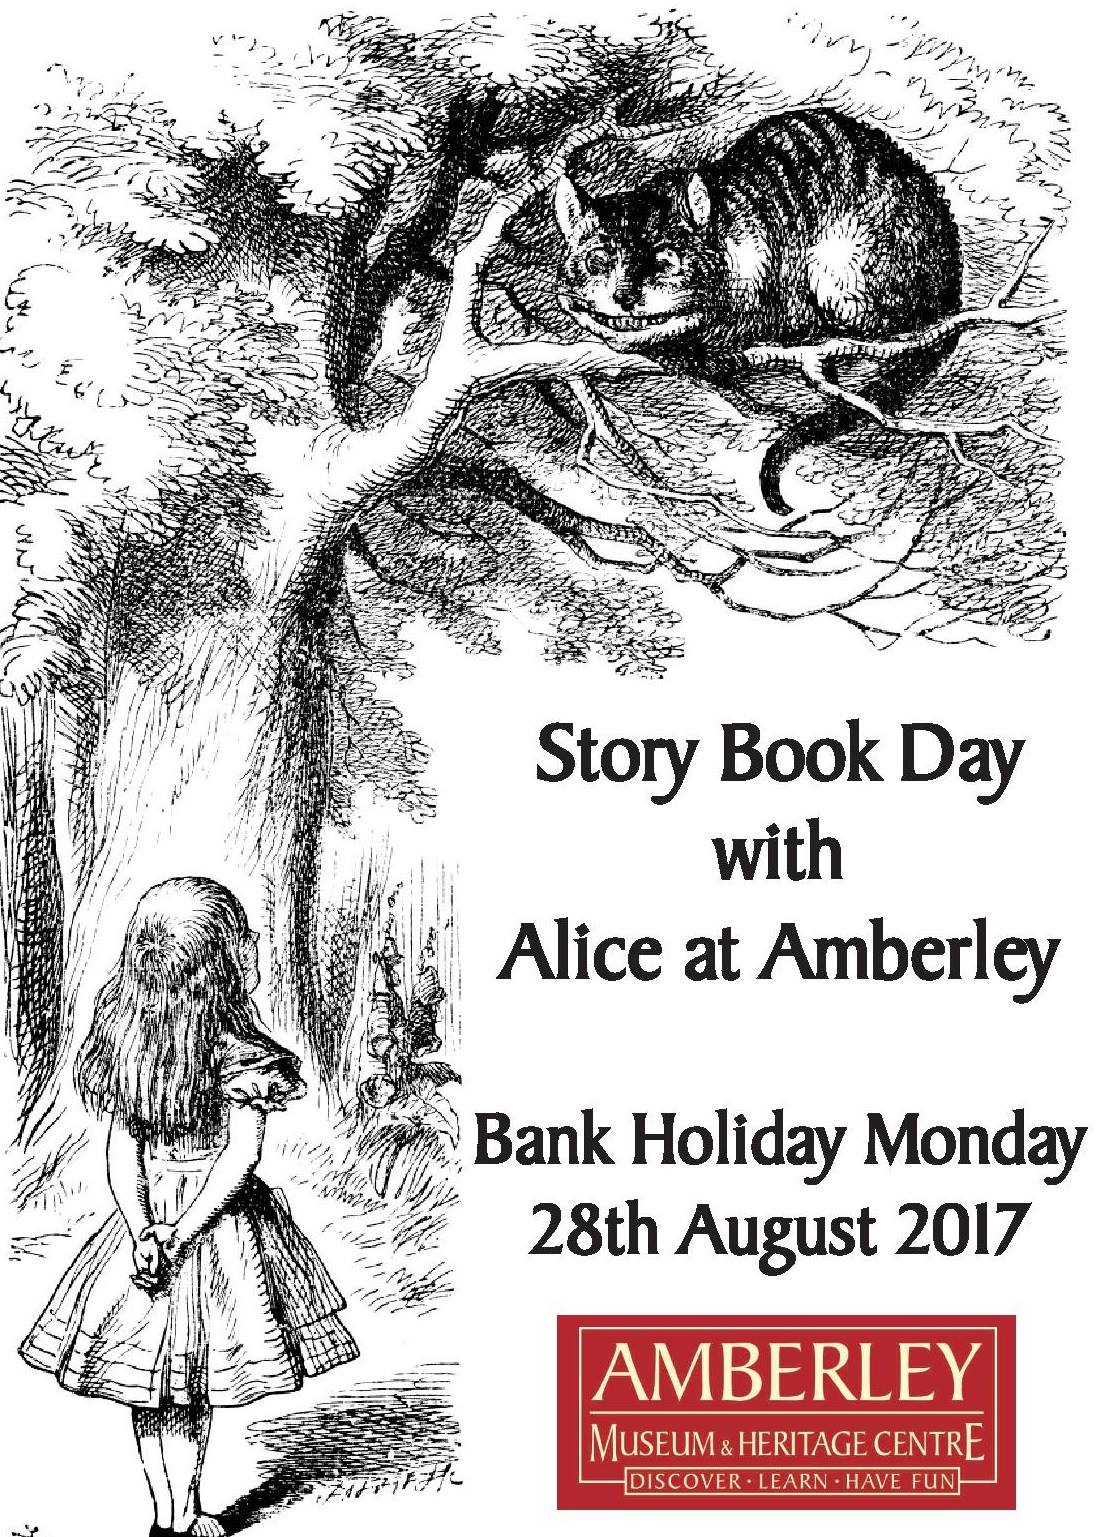 Story Book Day with Alice at Amberley